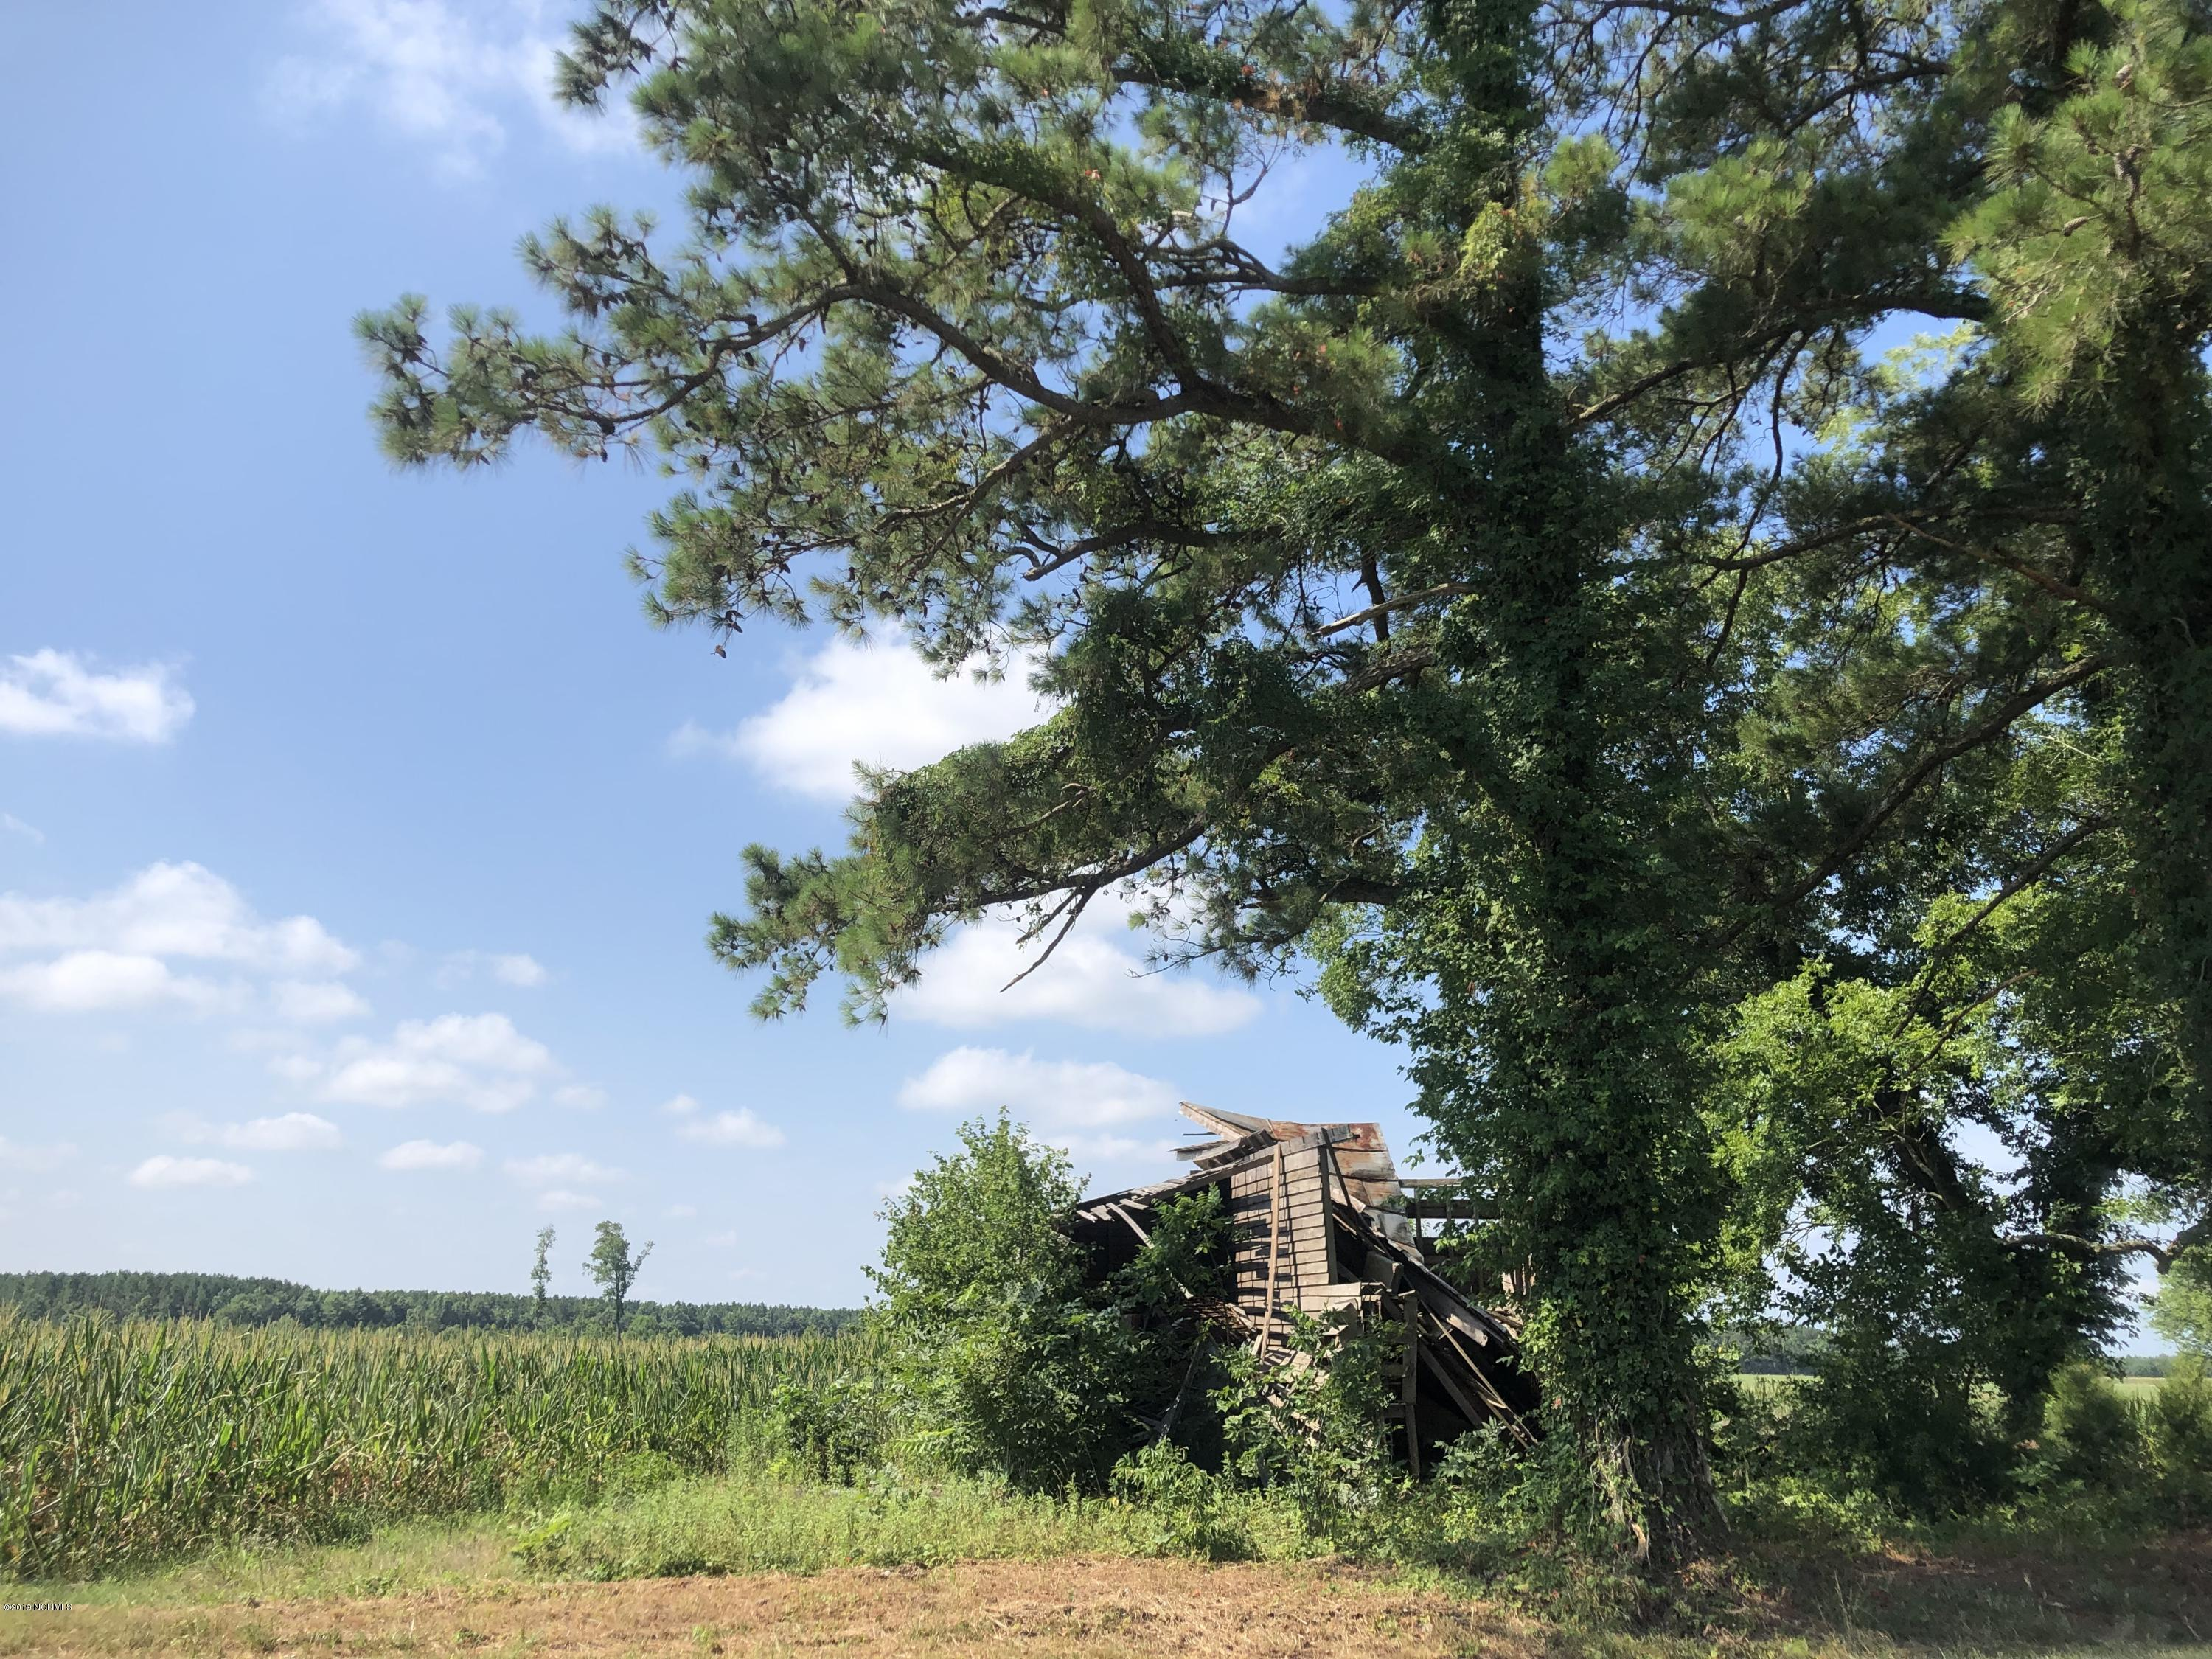 2364 Nc 102, Winterville, North Carolina 28590, ,Residential land,For sale,Nc 102,100173997